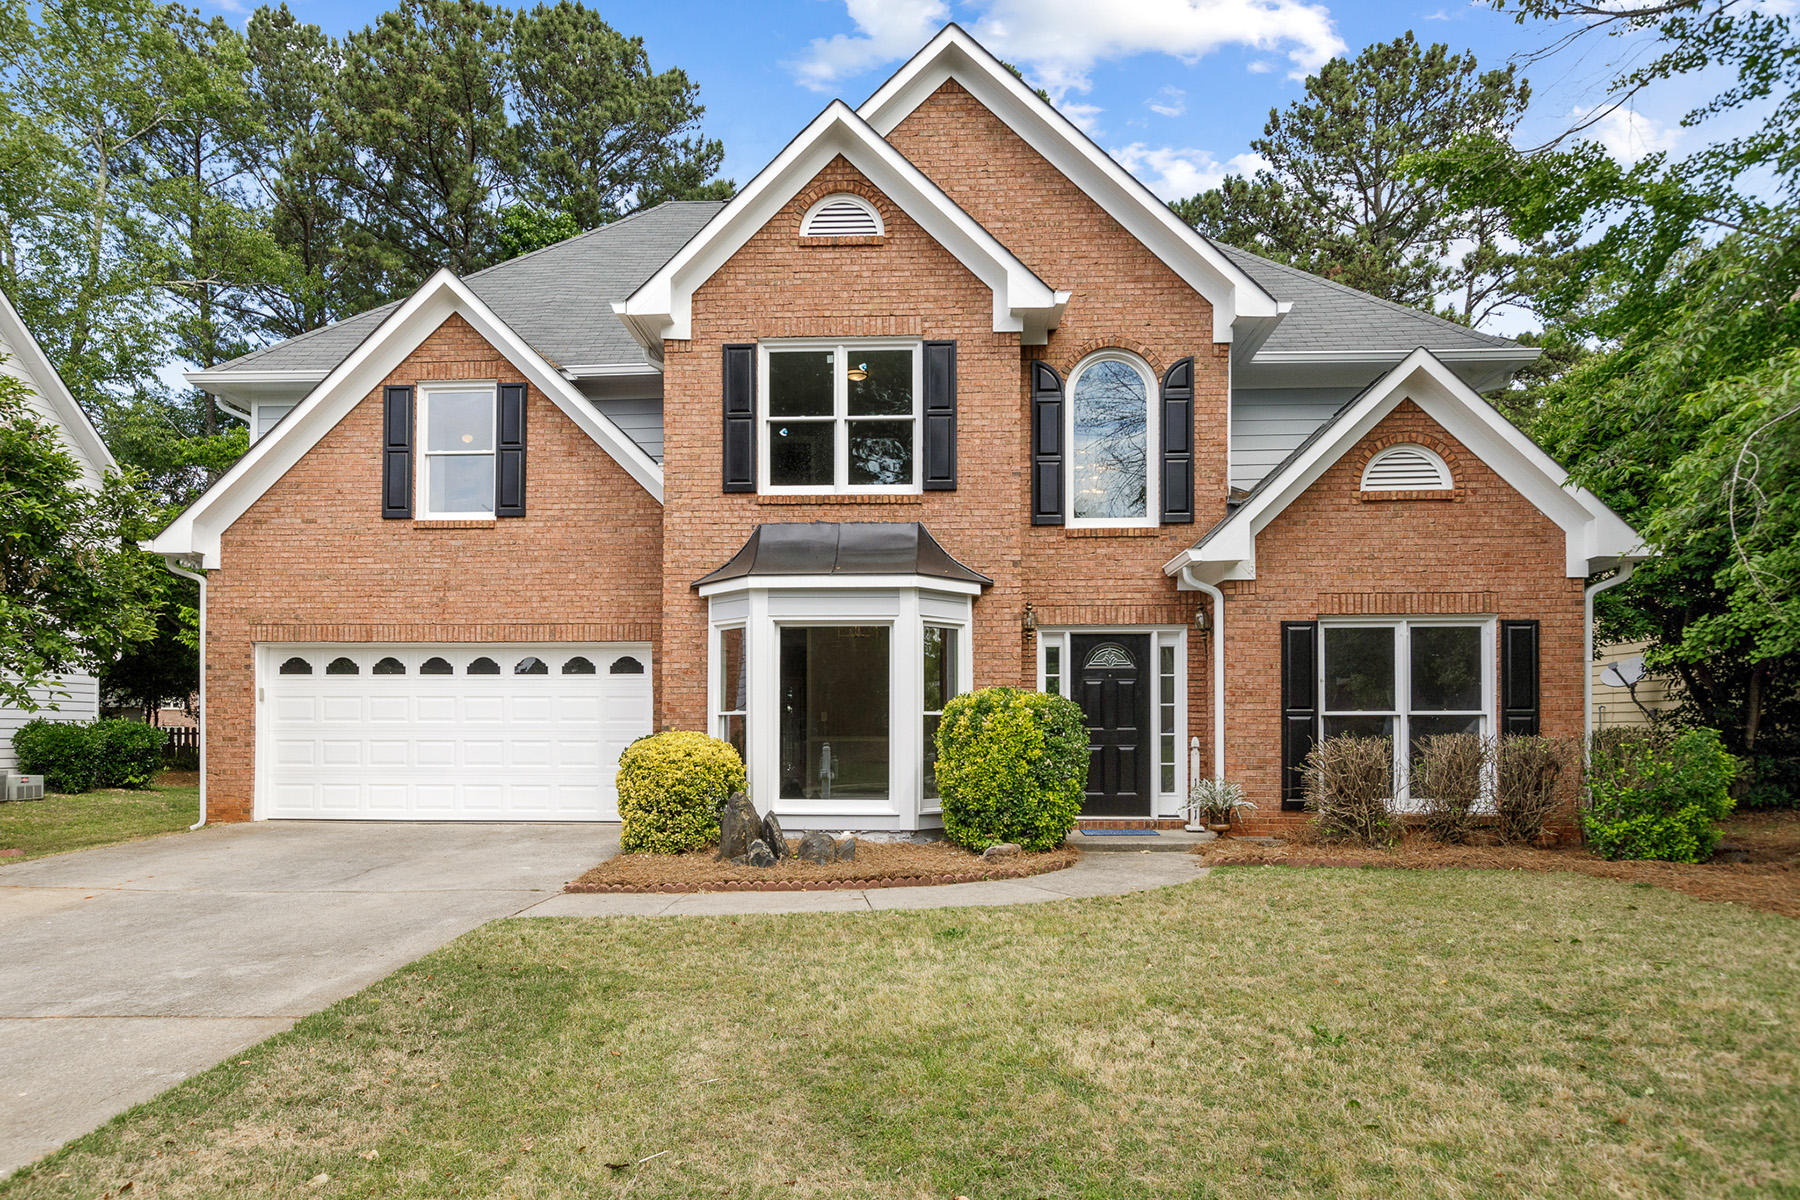 Single Family Homes for Sale at Chadwick Pointe ~ Active Swim and Tennis Coummunity 1301 Chadwick Pointe Lawrenceville, Georgia 30043 United States